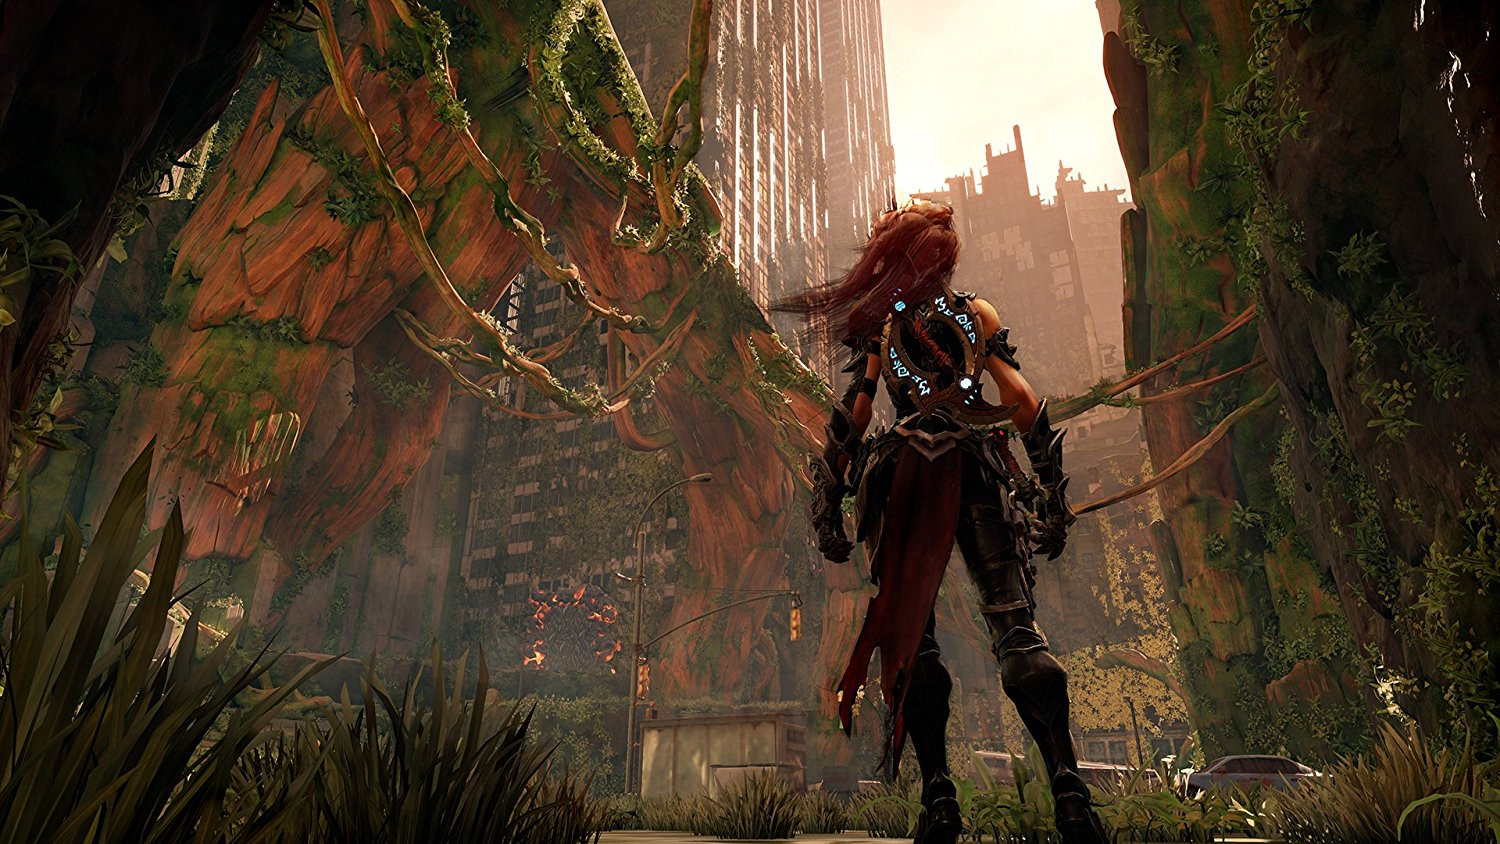 (Update) Darksiders III is in the works, according to a leaked Amazon listing screenshot